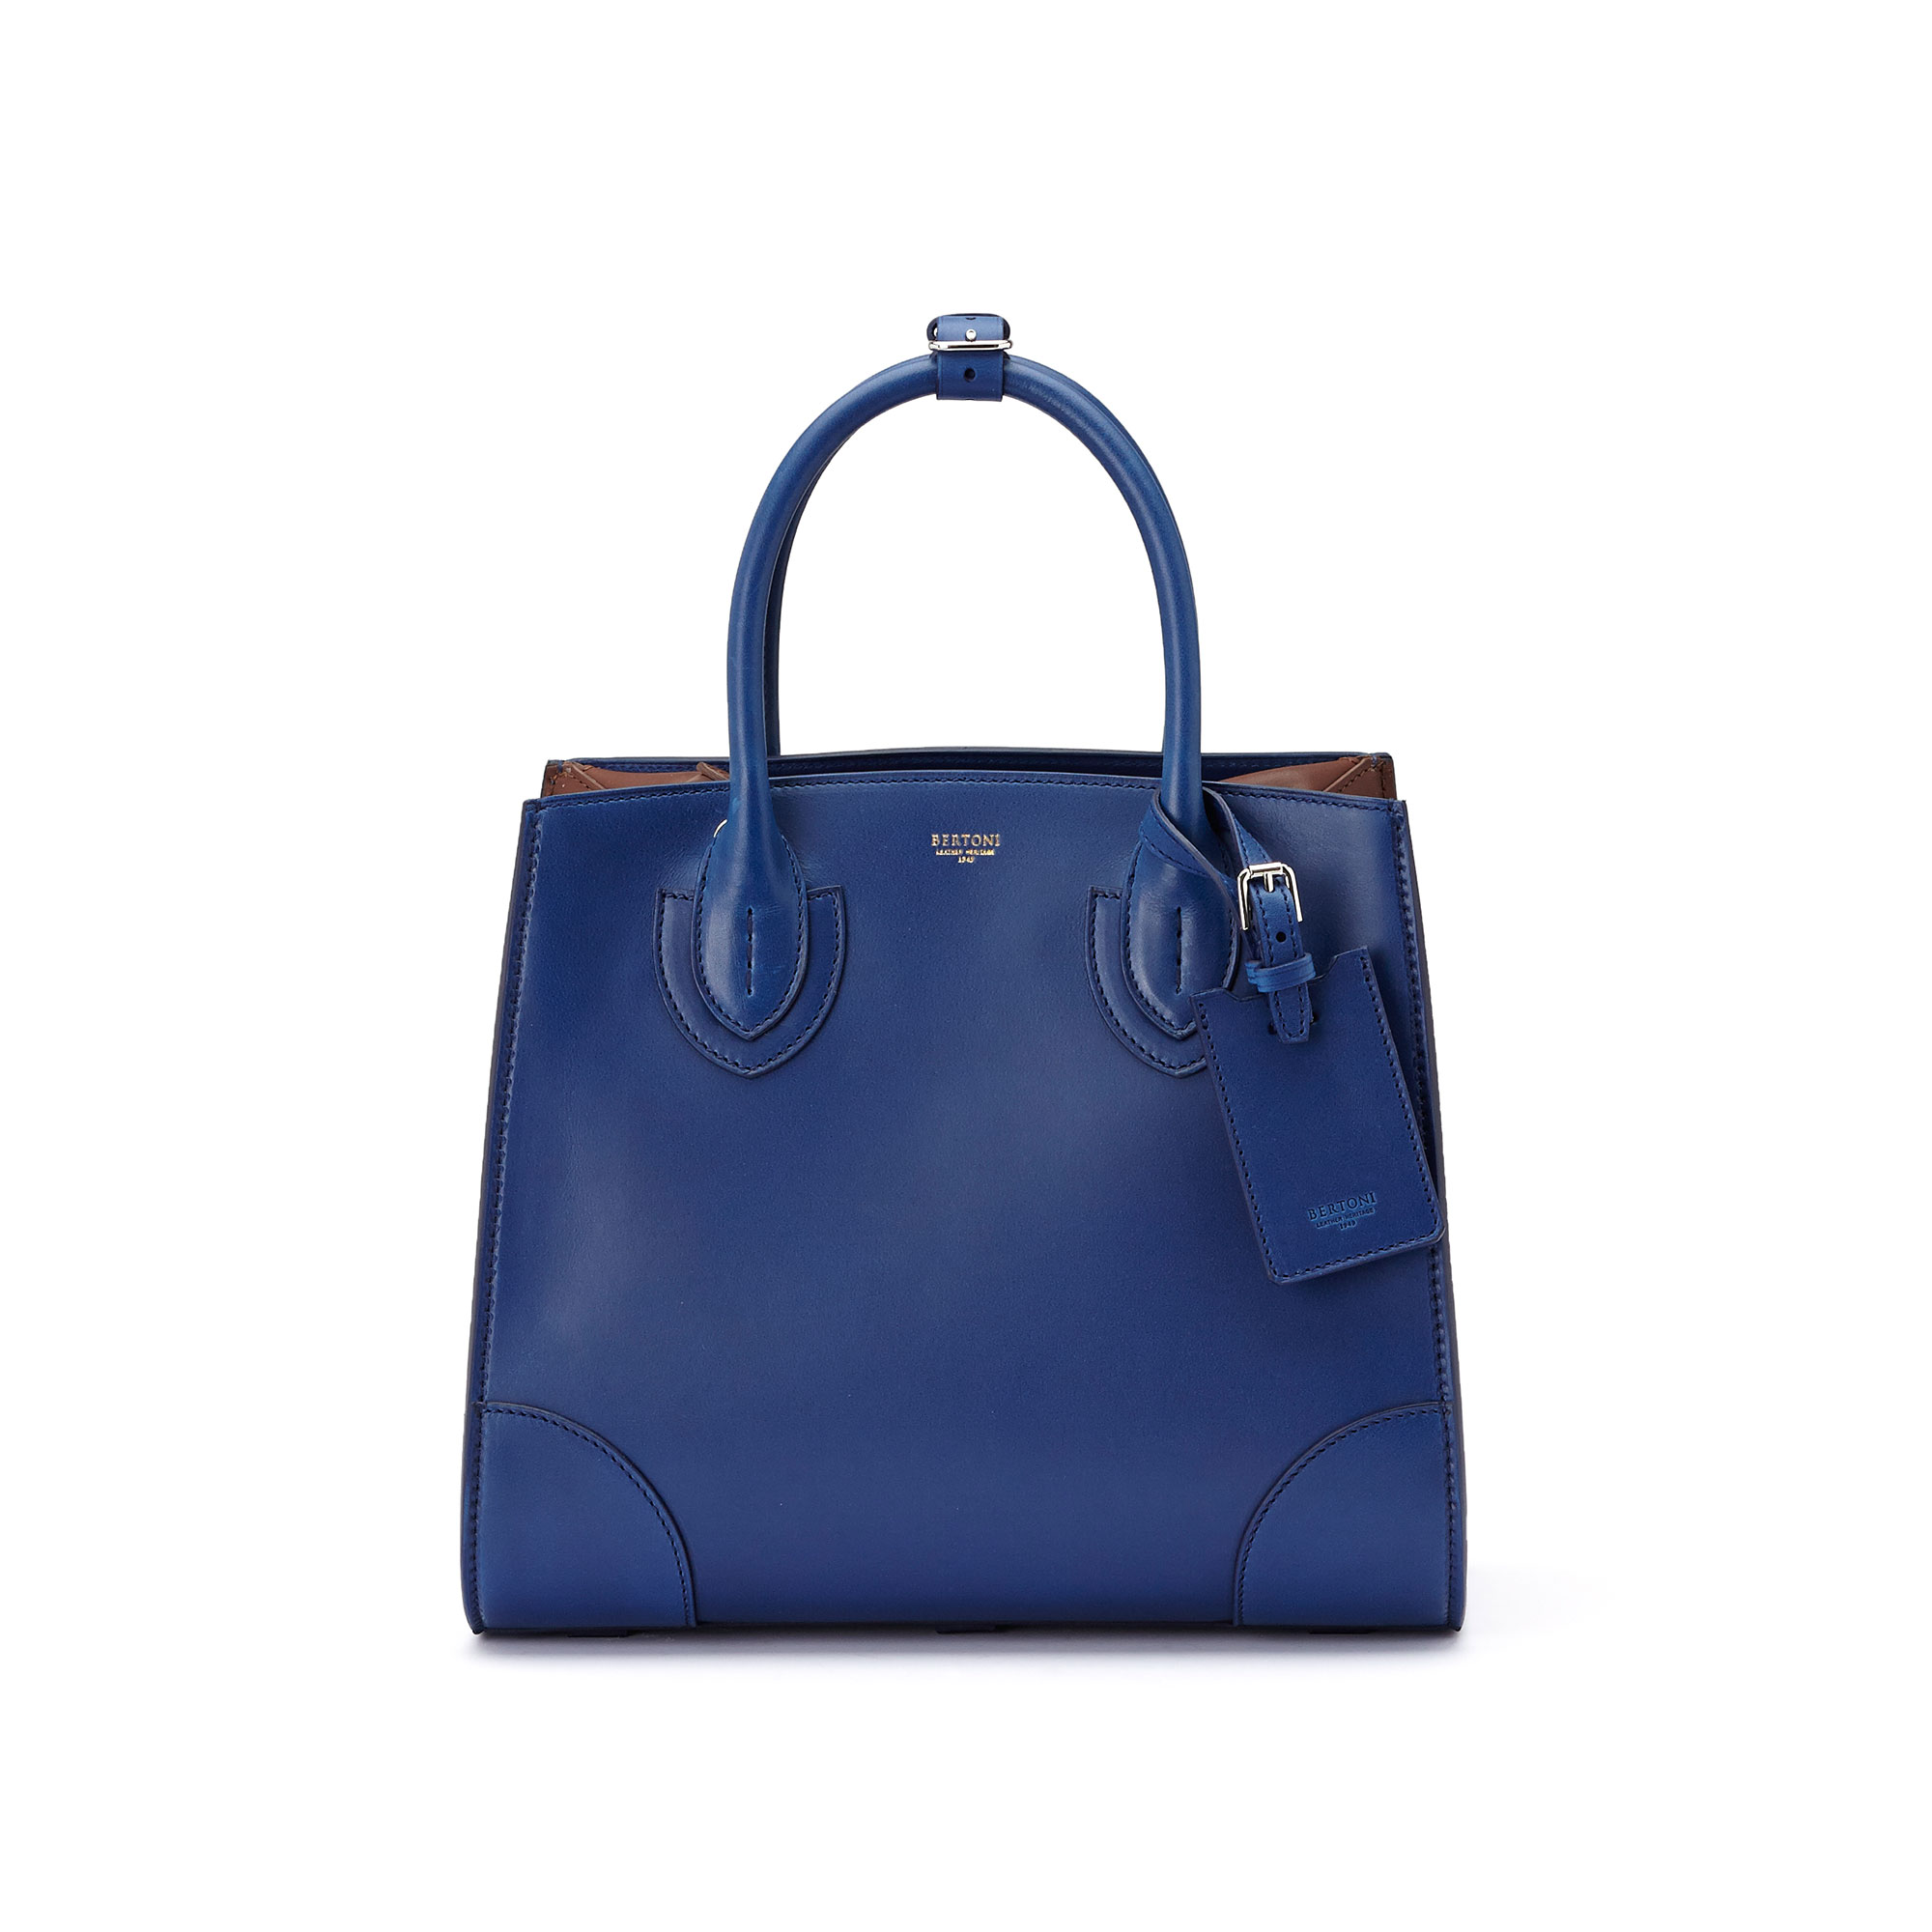 The blue, terrabruciata and brown french calf Darcy medium bag by Bertoni 1949 02